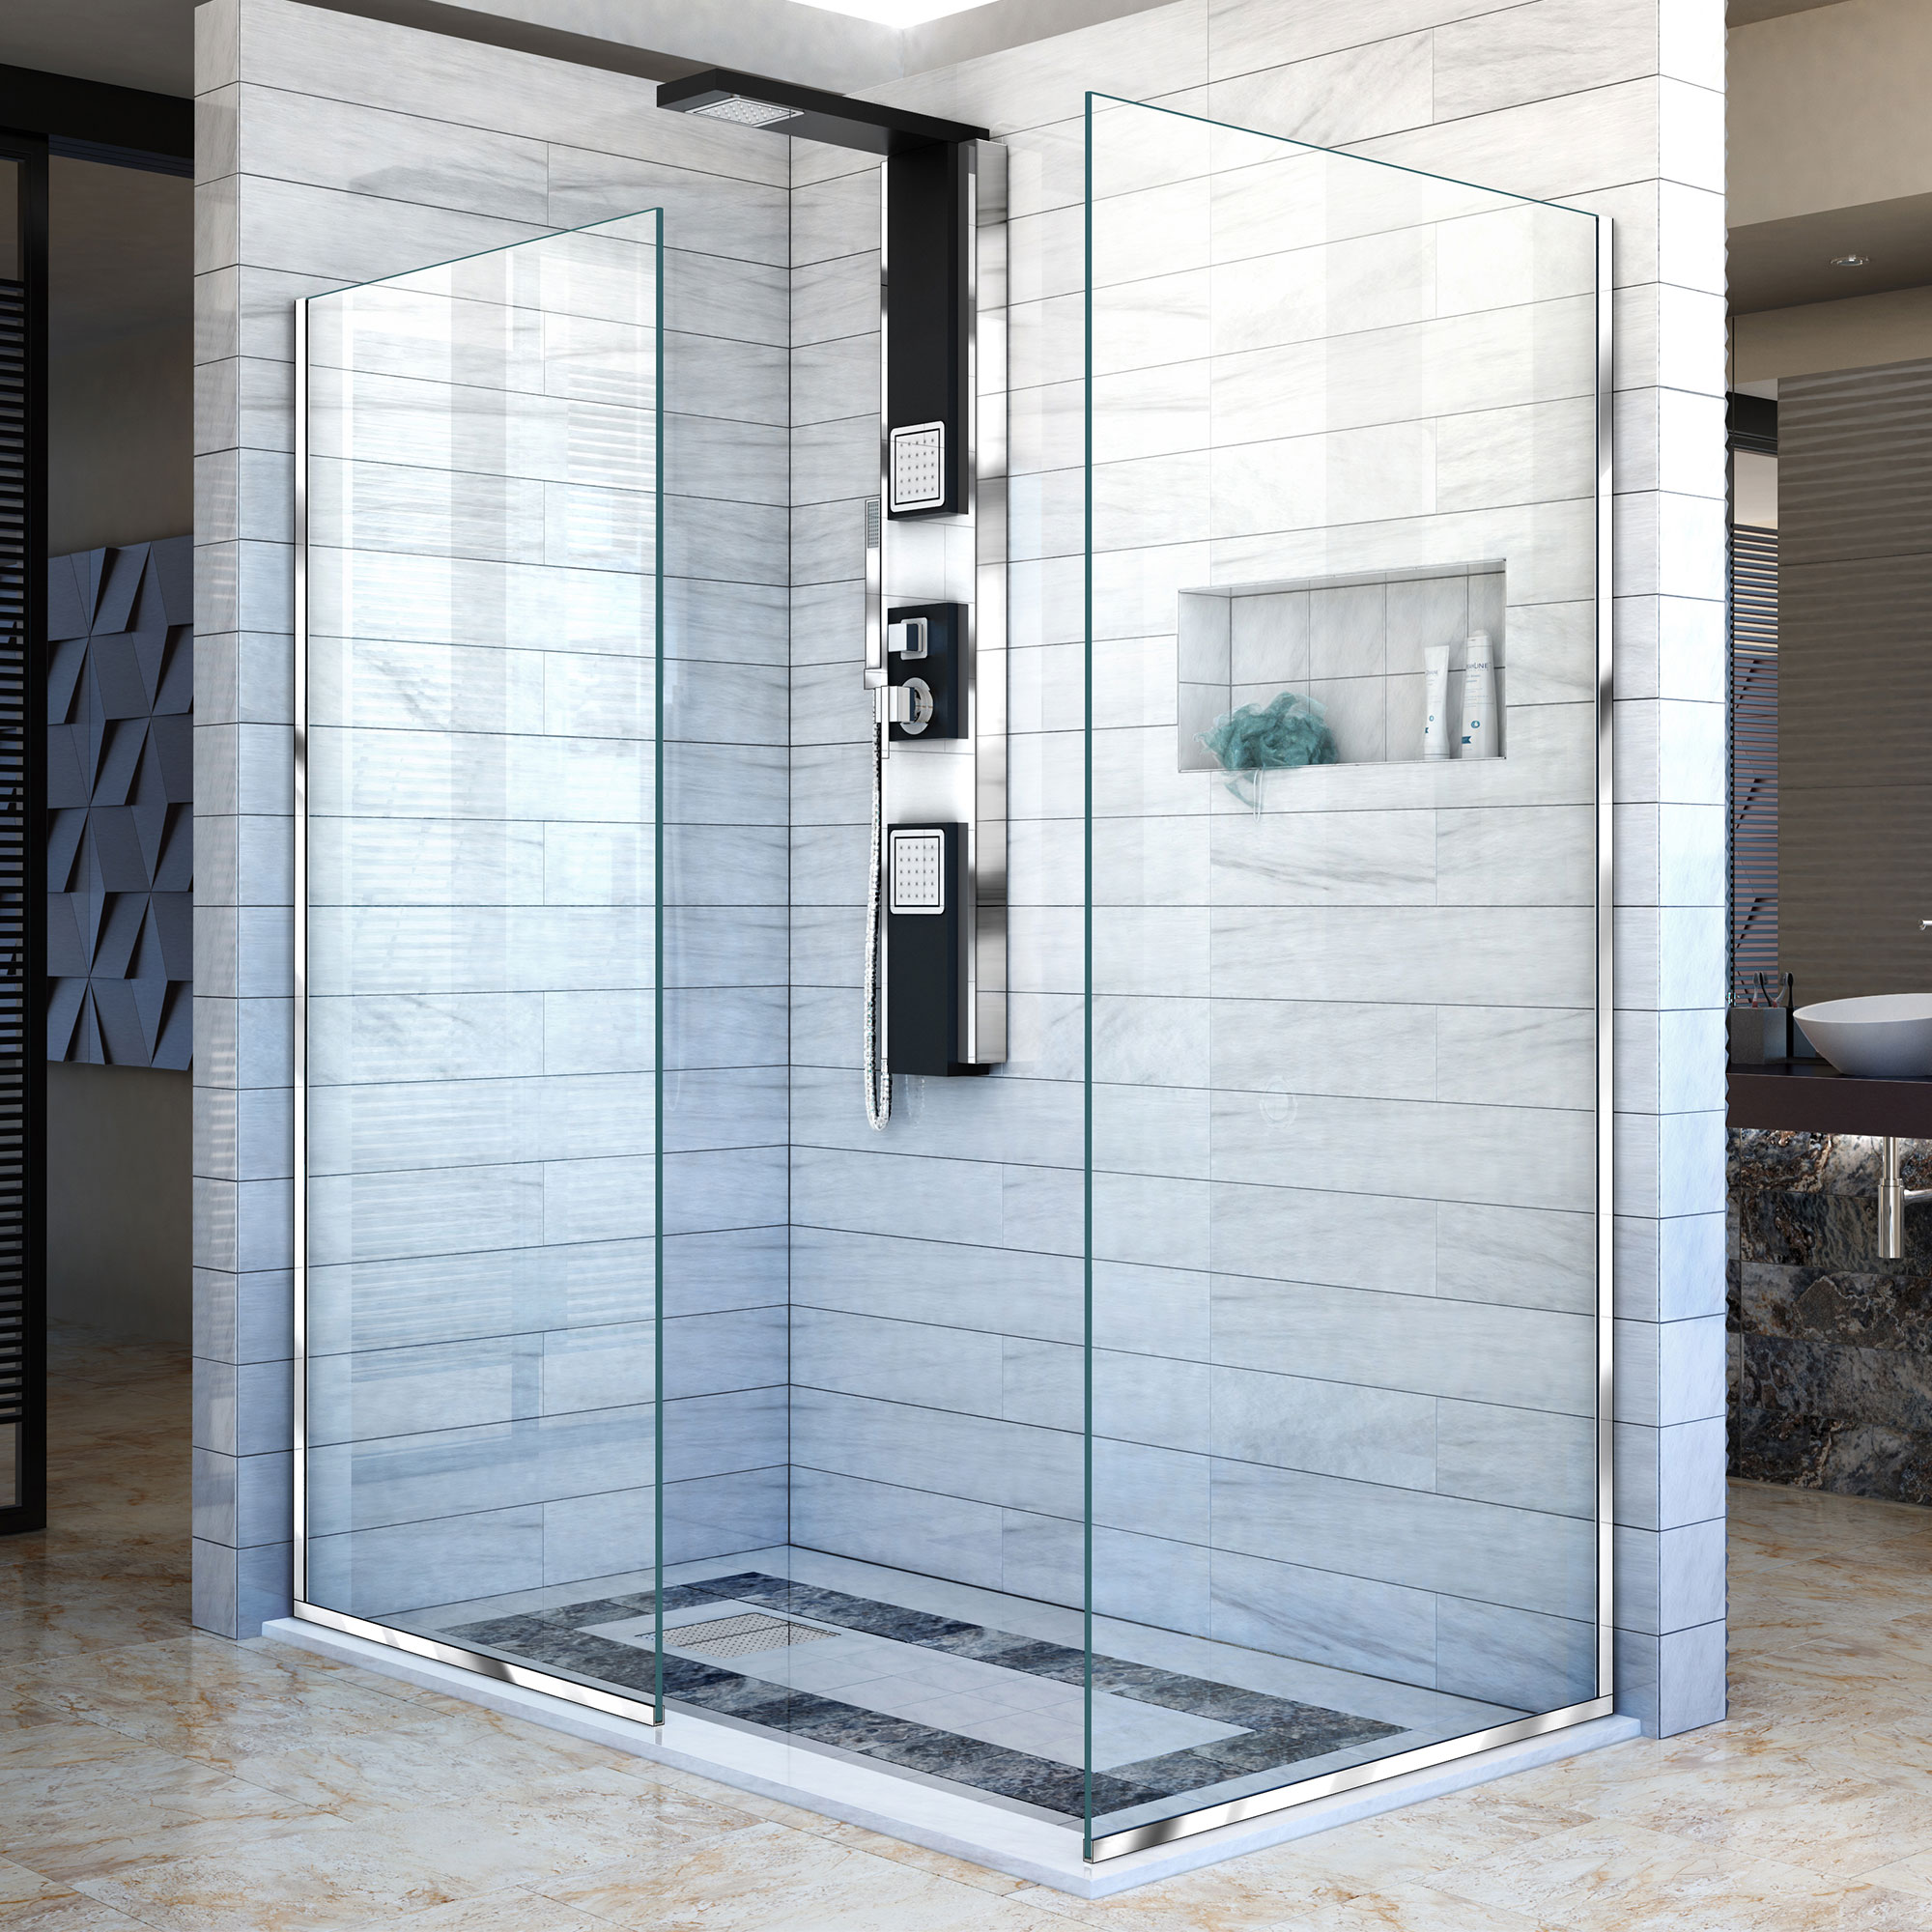 DreamLine Linea Two Individual Frameless Shower Screens 34 in. and 30 in. W x 72 in. H, Open Entry Design in Chrome